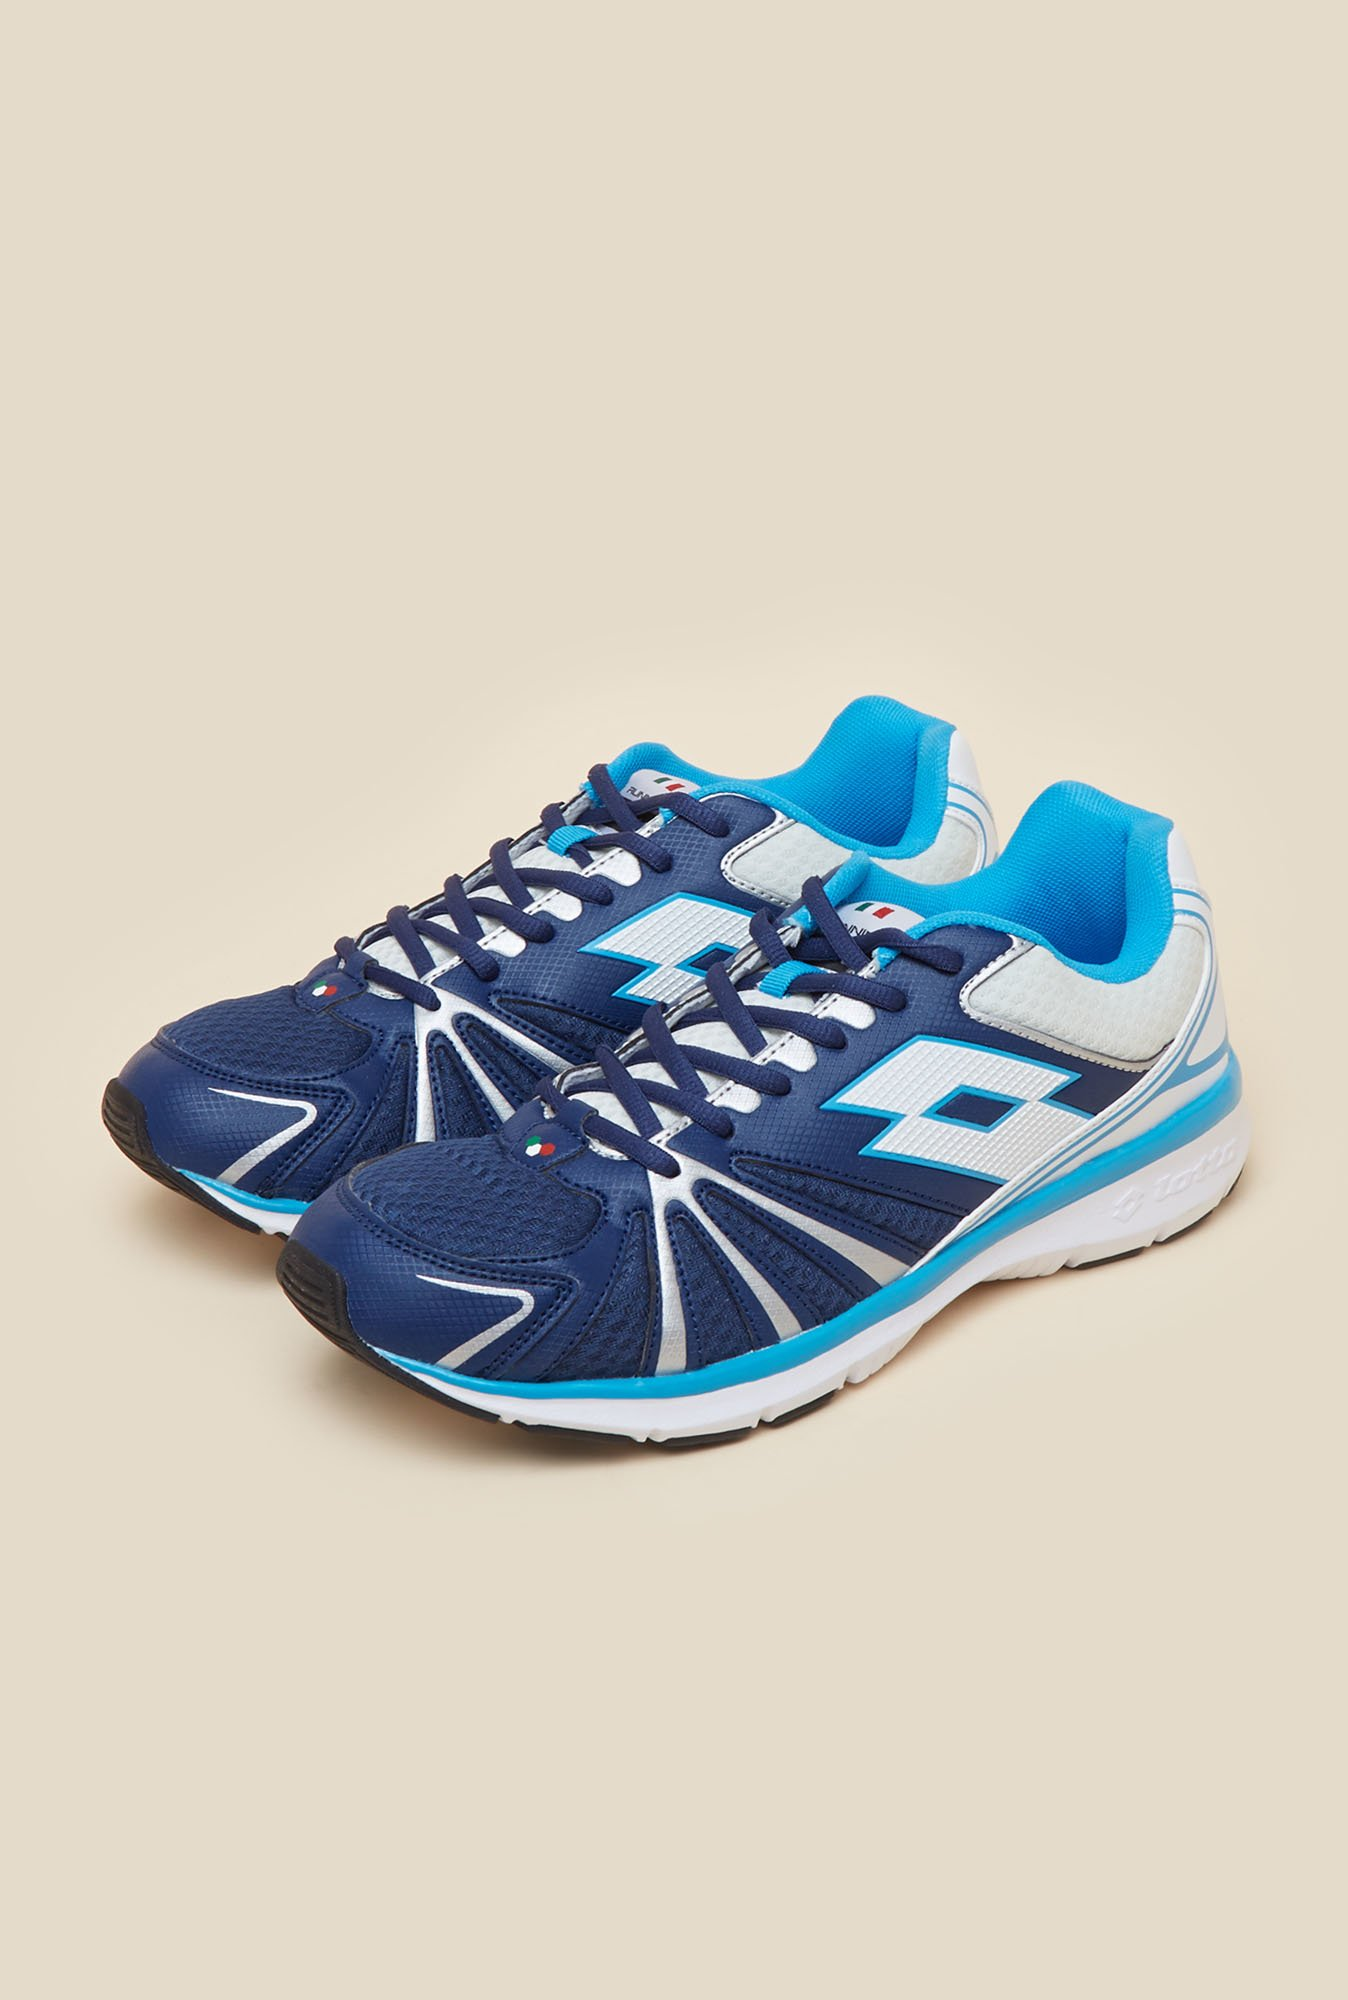 Lotto Flyride Blue & White Running Shoes